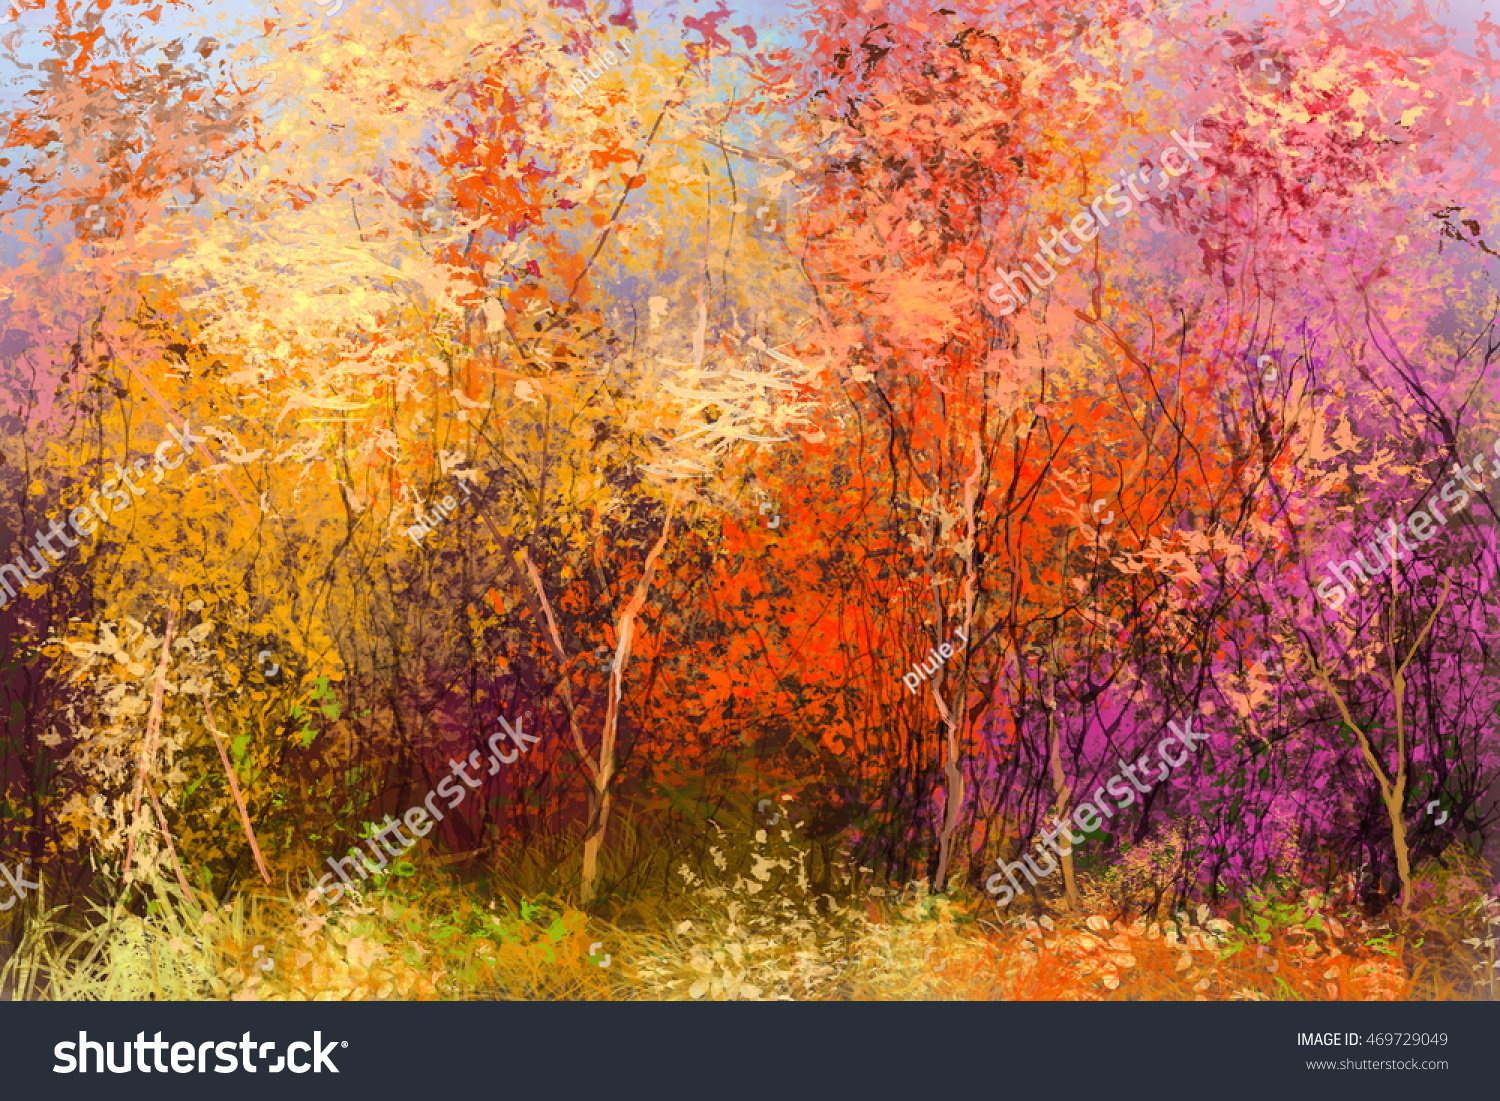 Oil paintings of trees in autumn the for Autumn tree painting